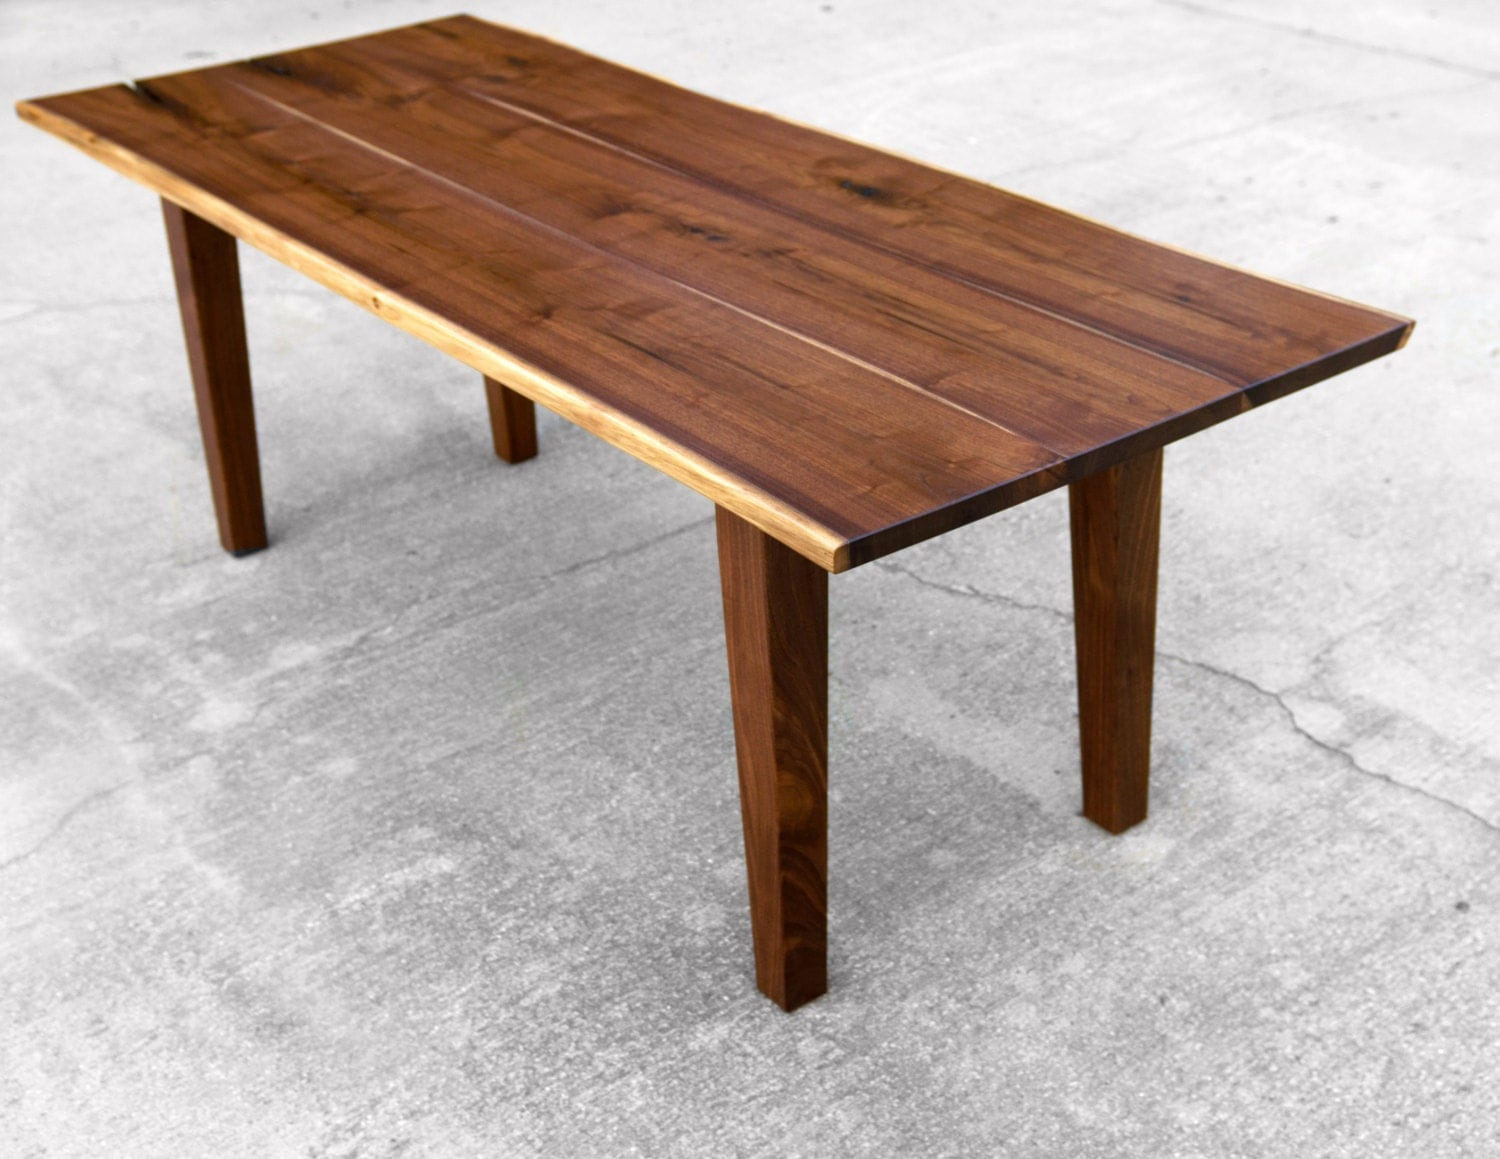 Walnut Live Edge Dining Table with Tapered Legs Custom